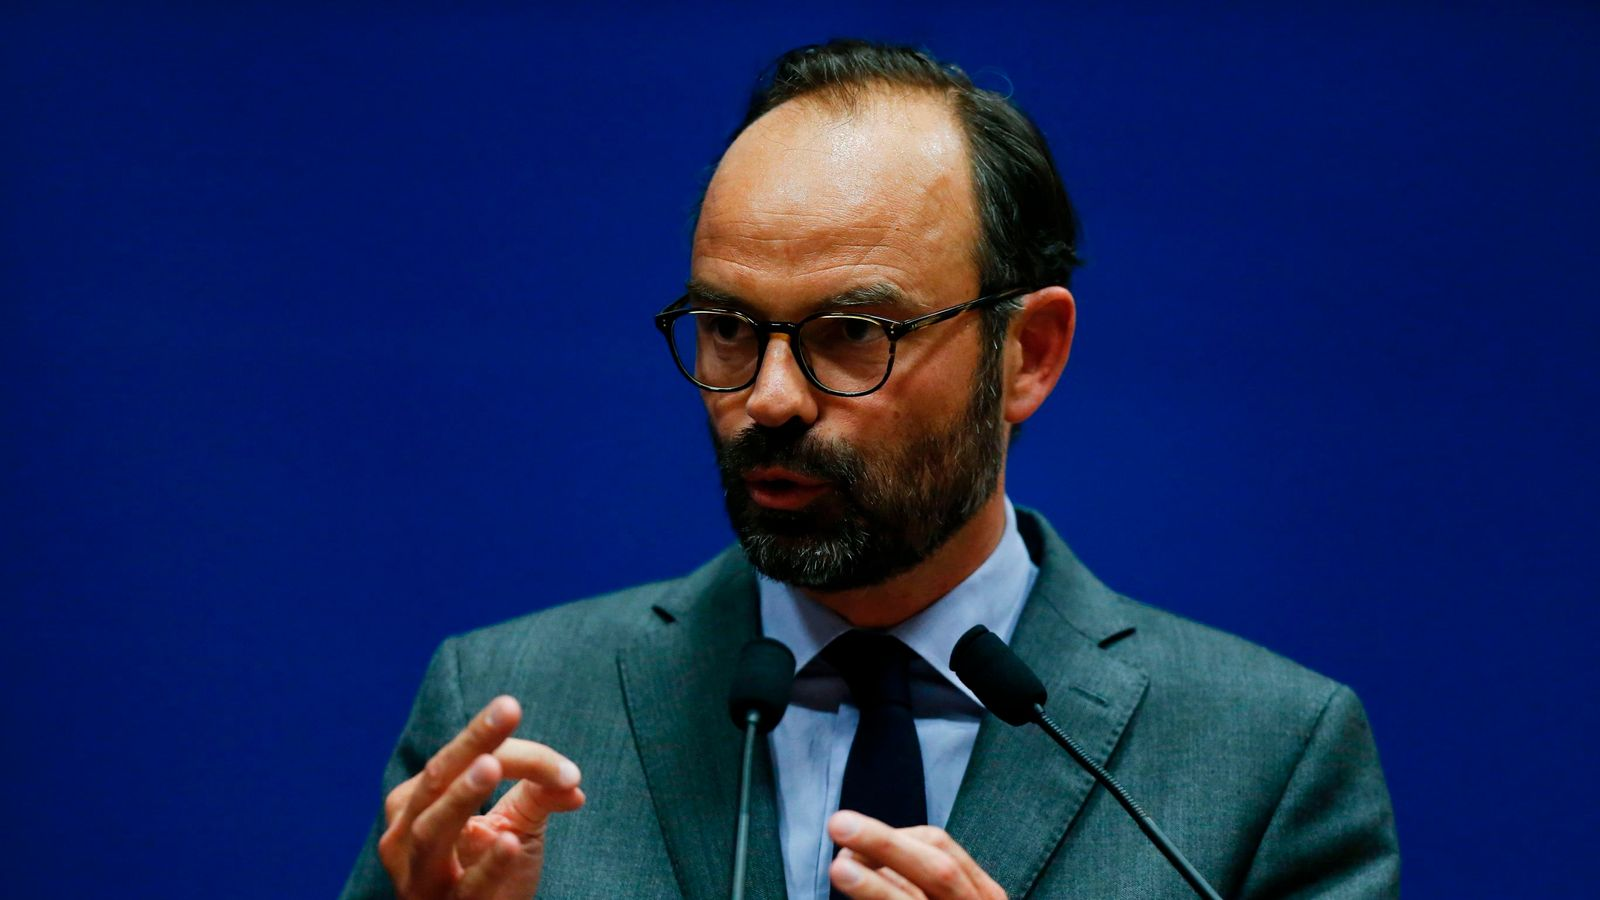 Emmanuel macron selects edouard philippe as french pm for Chaise 98 edouard francois